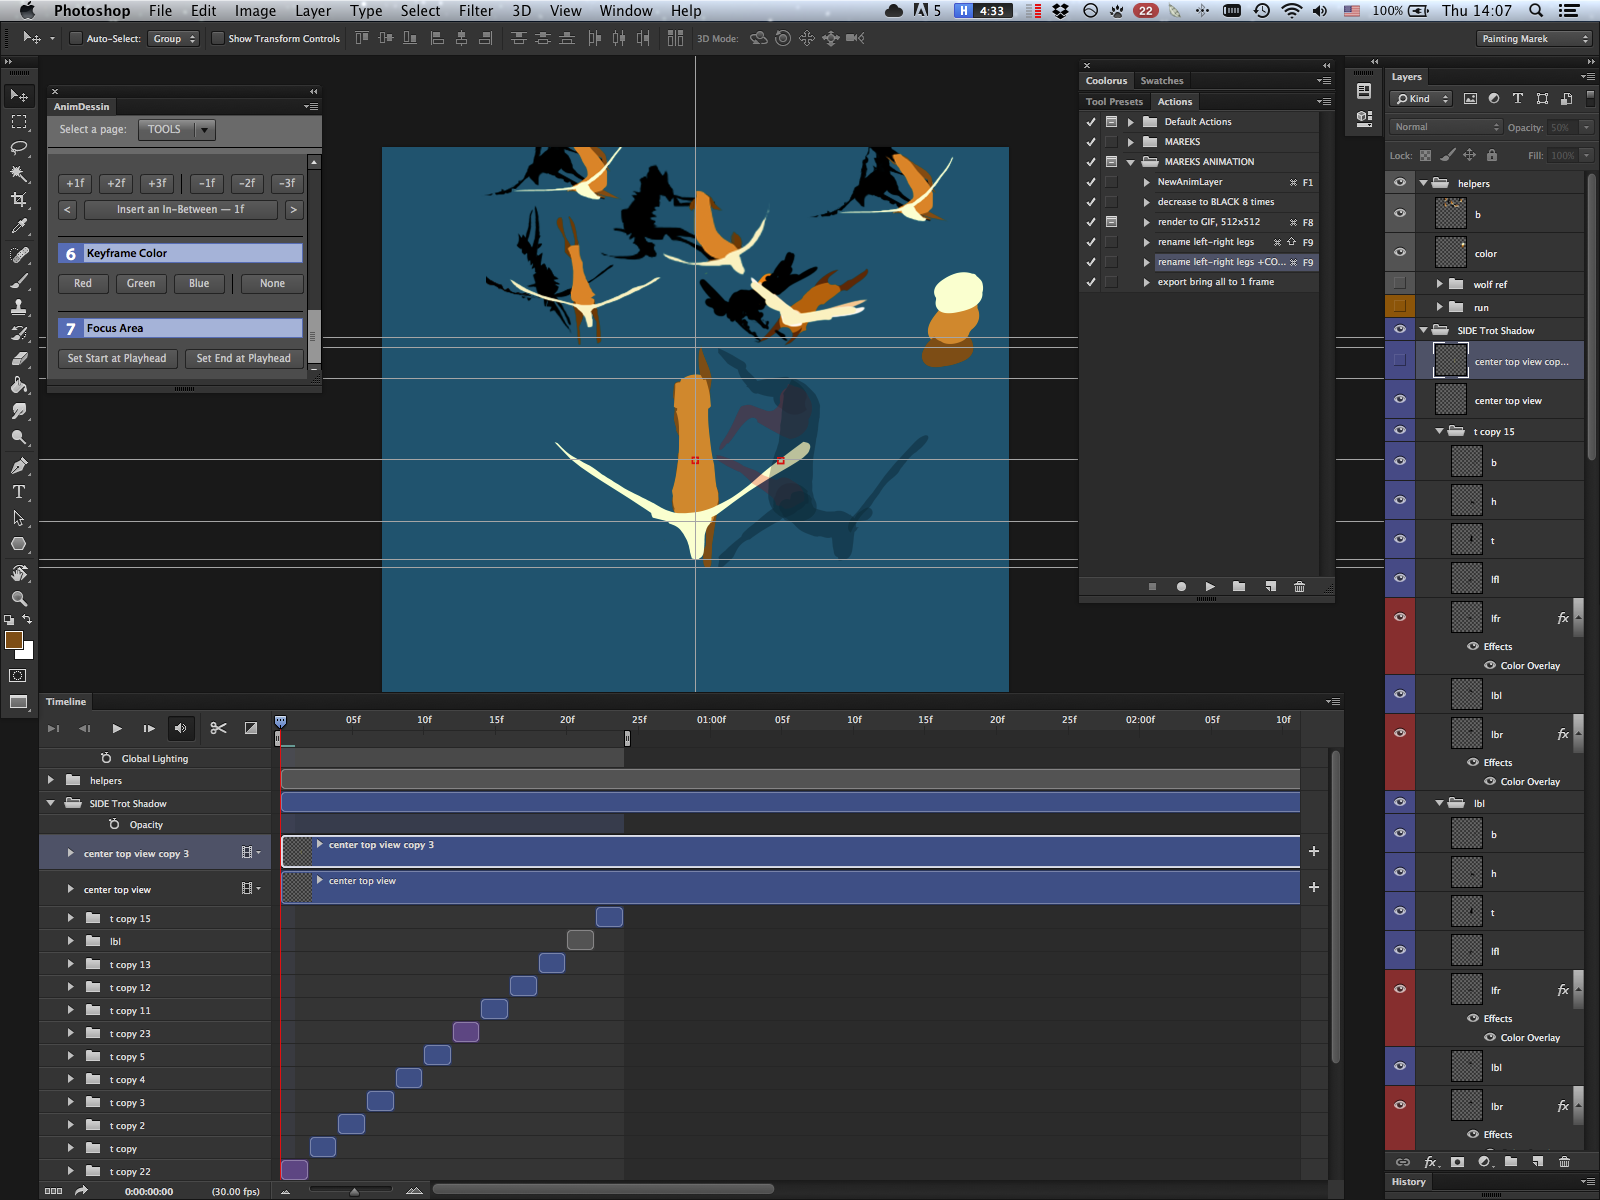 Screenshot of animating a deer in Photoshop